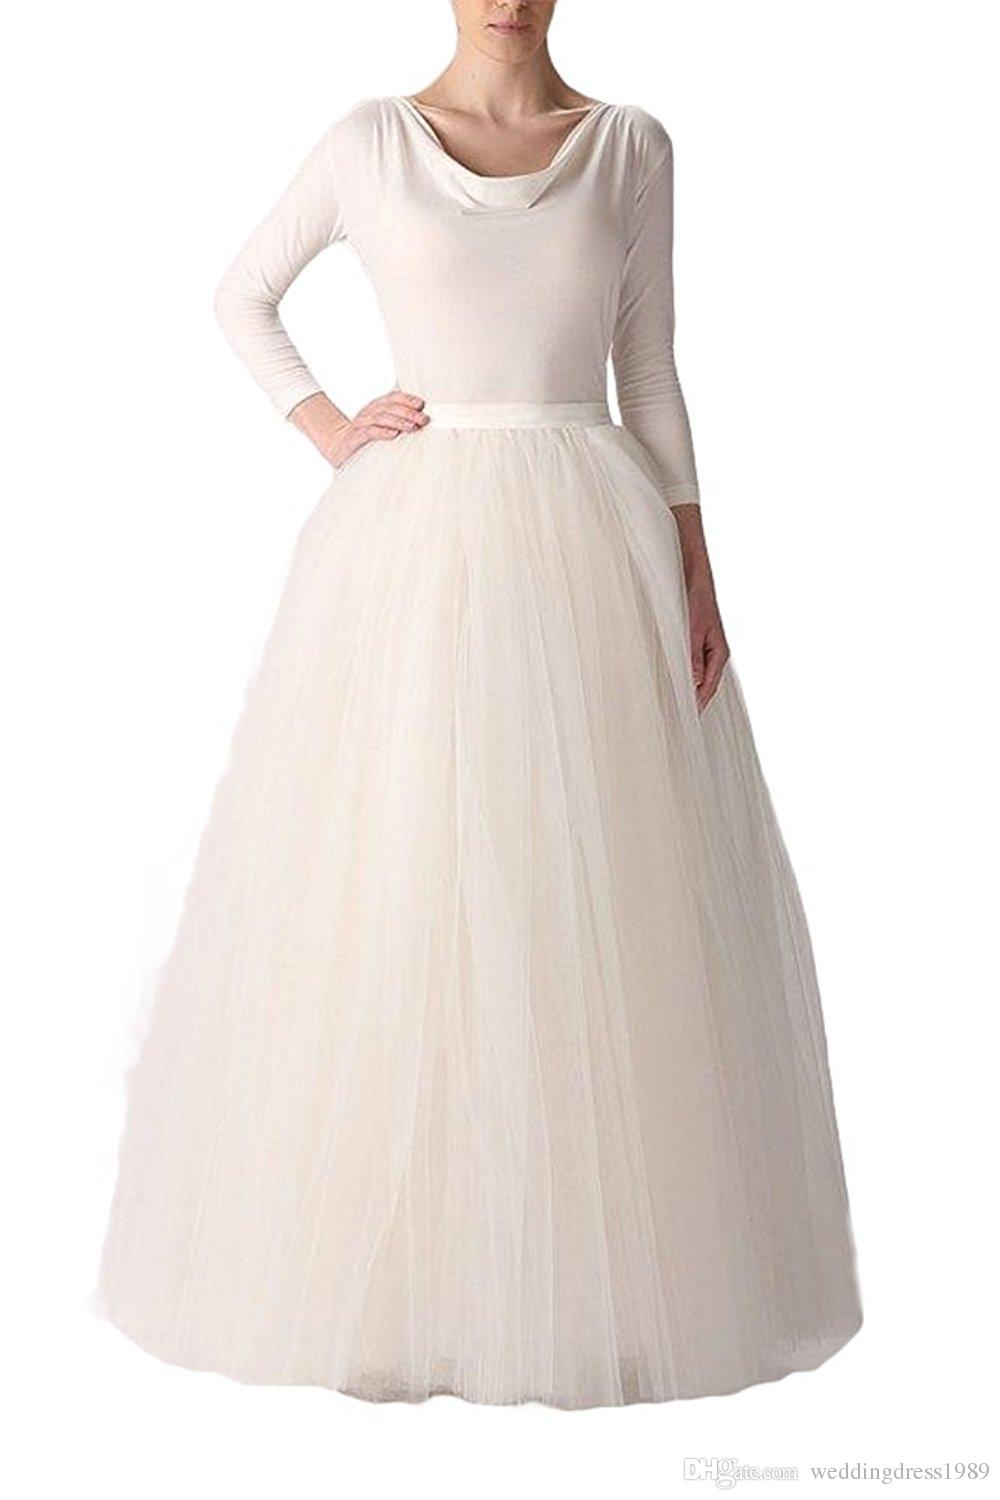 Hot Selling Long A-Line Tutu Floor Length Tulle Party Prom Skirt Color Petticoat Half Slip Underskirt Stock Cheap Free Shipping